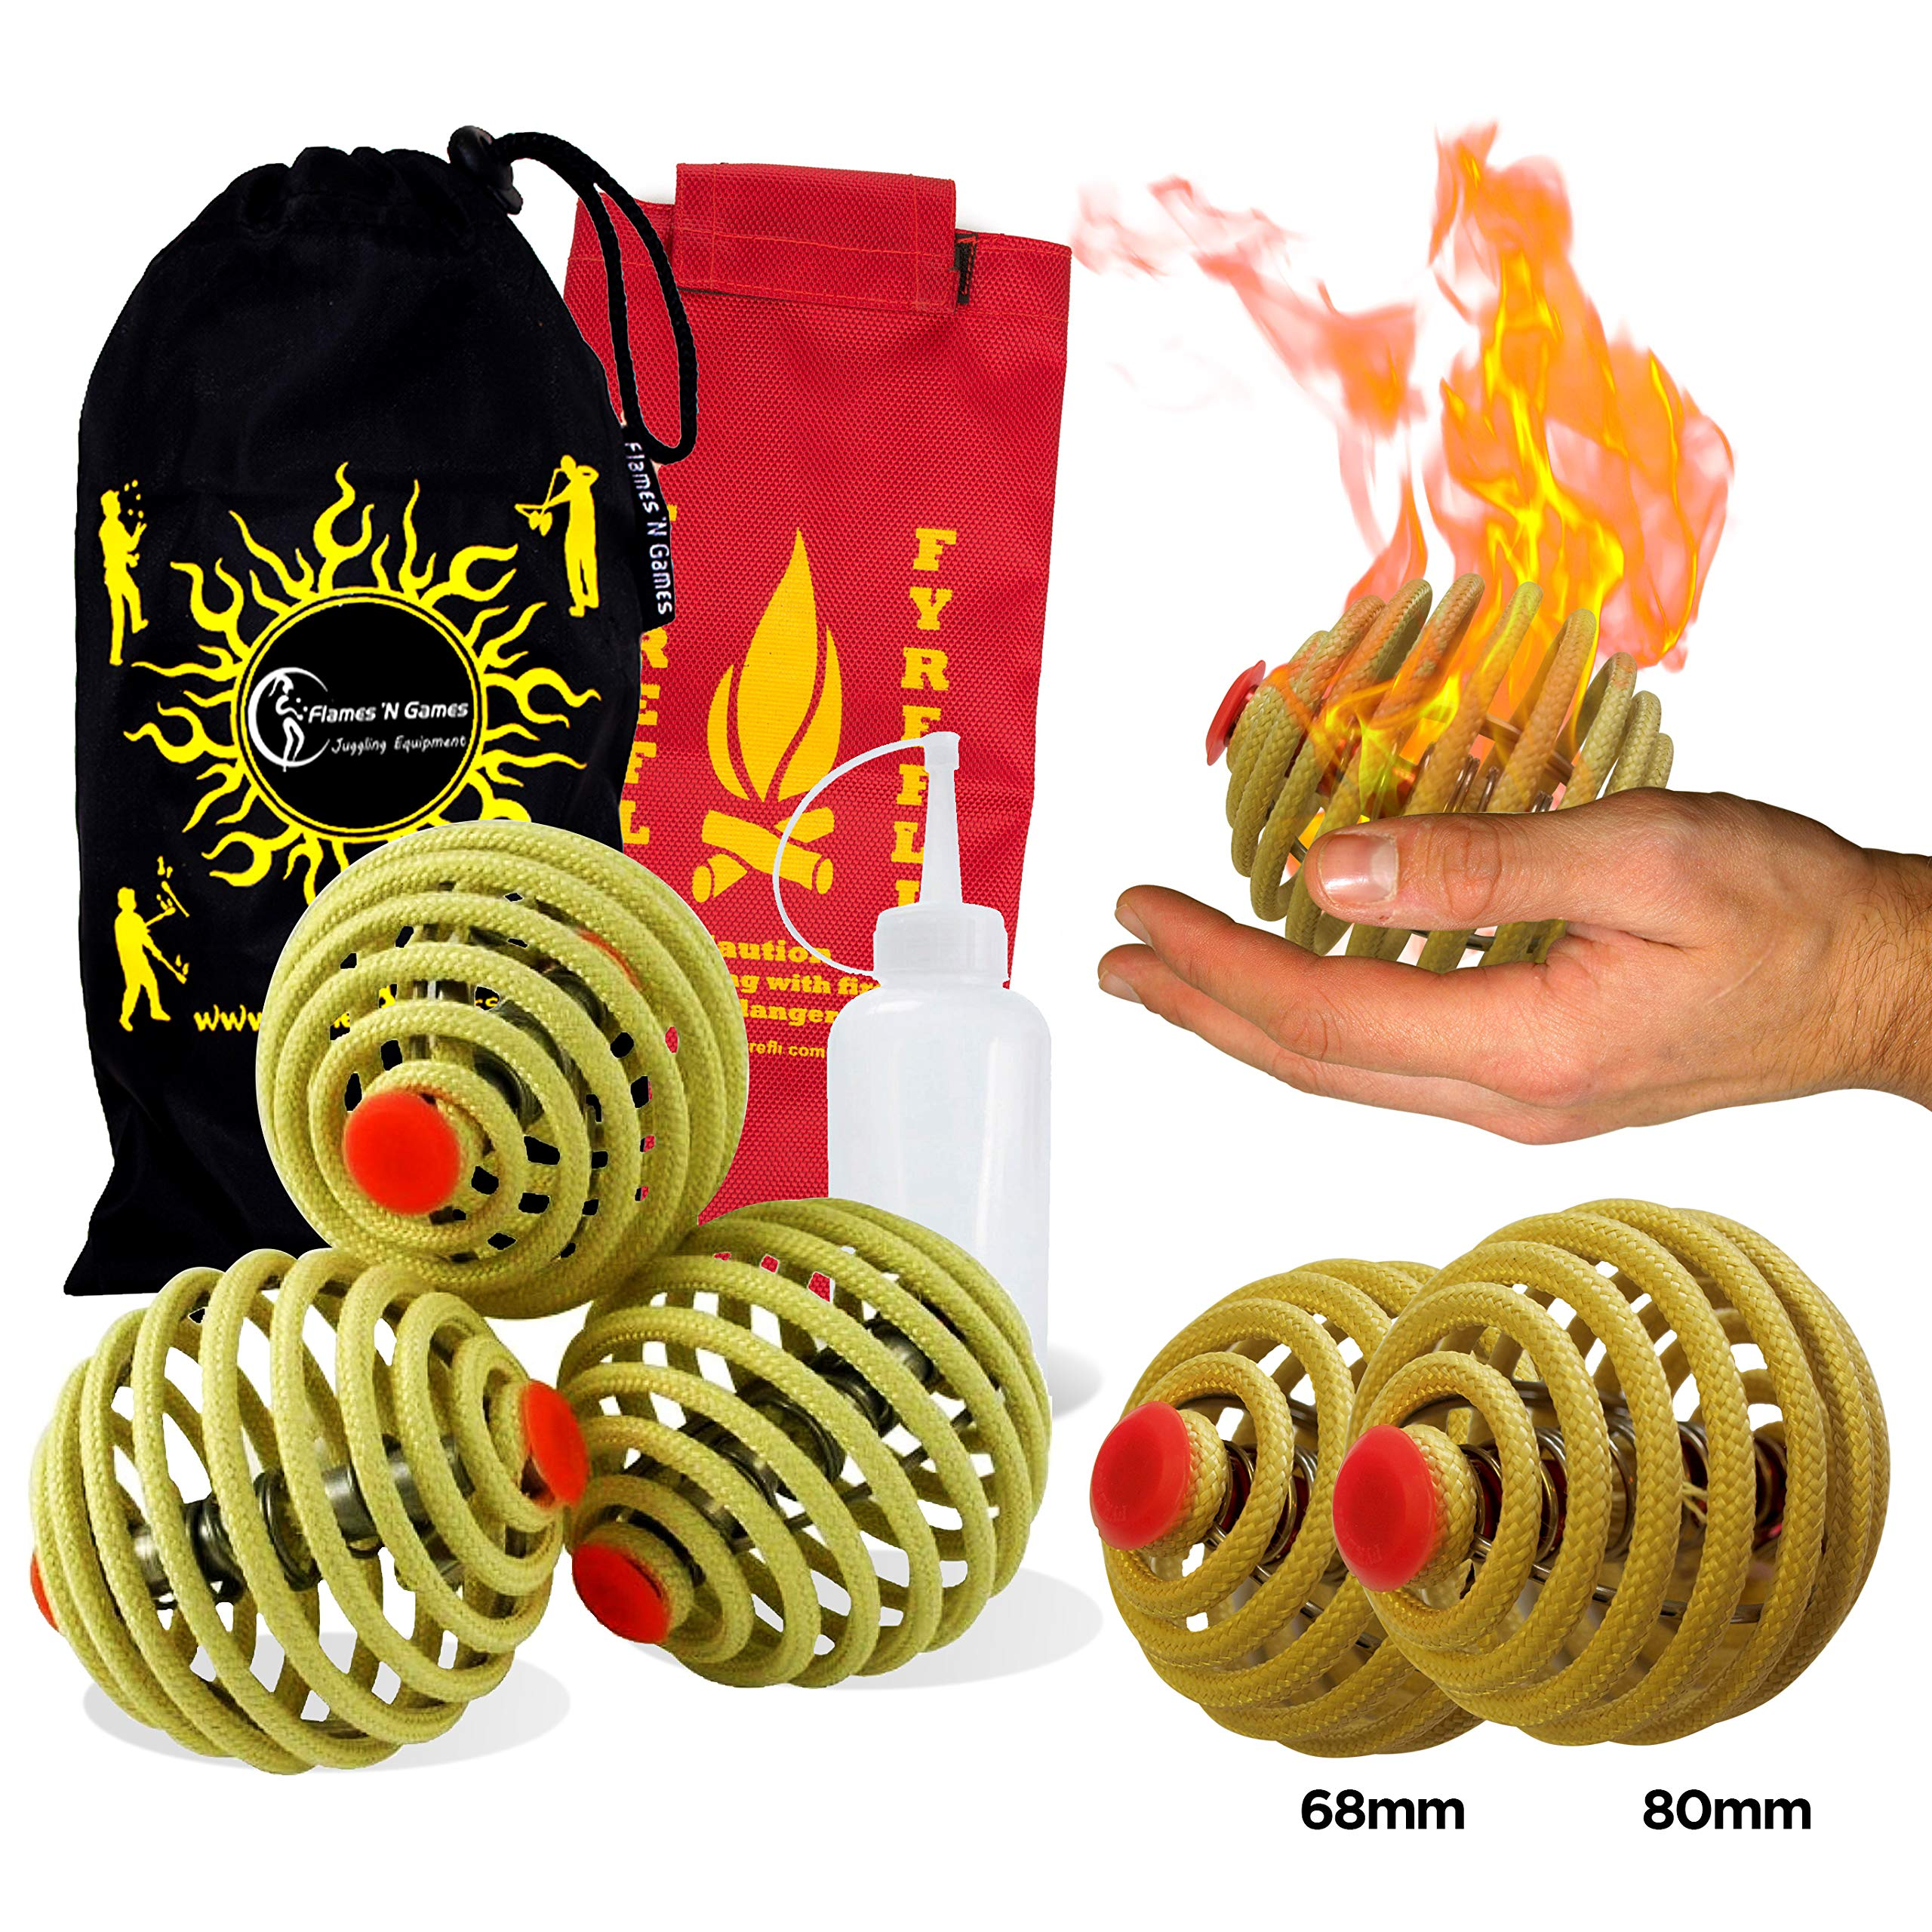 Fyrefli fire juggling balls (68mm) Pro Fire Juggling Ball Set of 3 and fuel bottle + Flames N Games Travel Bag. by Flames N Games Juggling Ball Sets